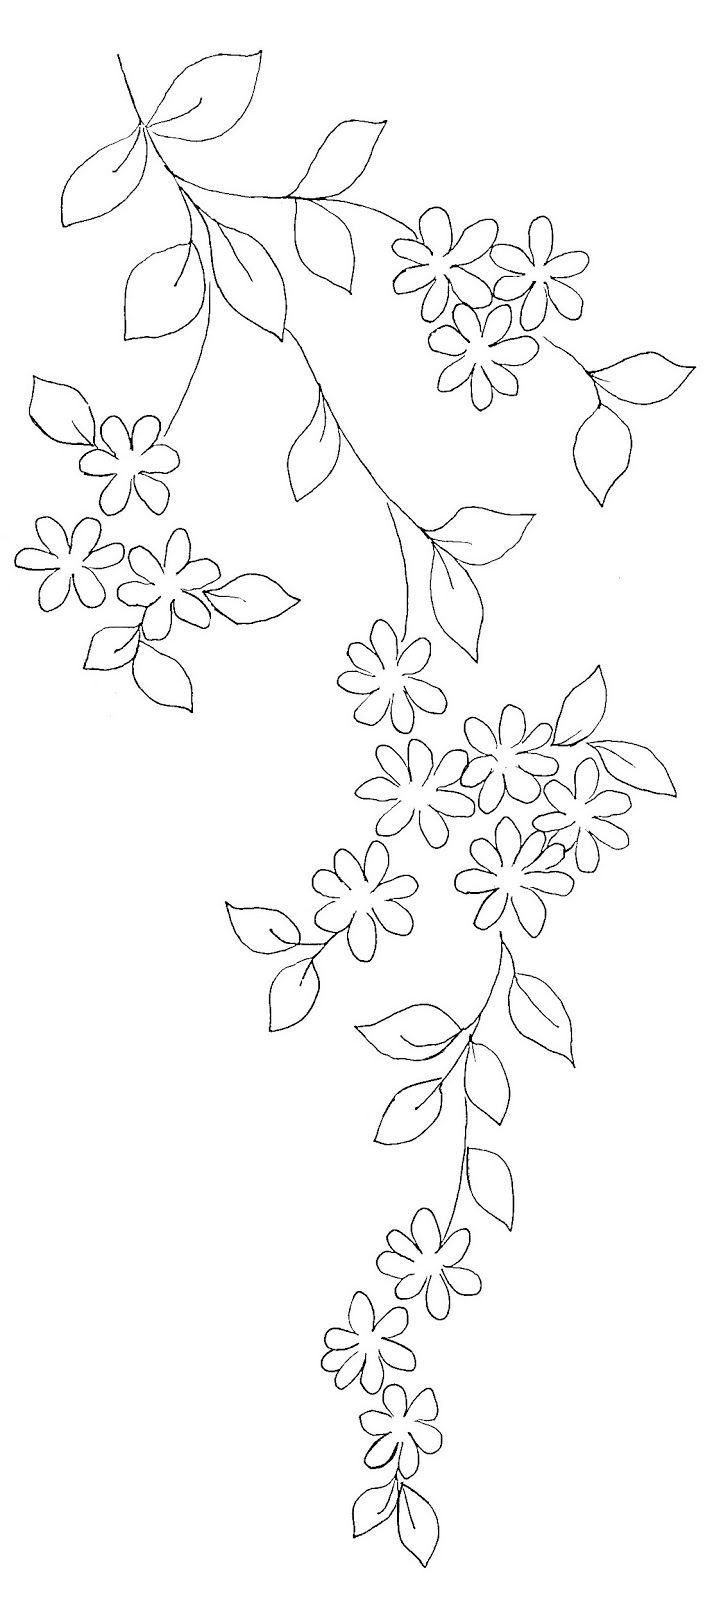 Embroidery pattern embroidery patterns pinterest embroidery embroidery pattern bankloansurffo Gallery